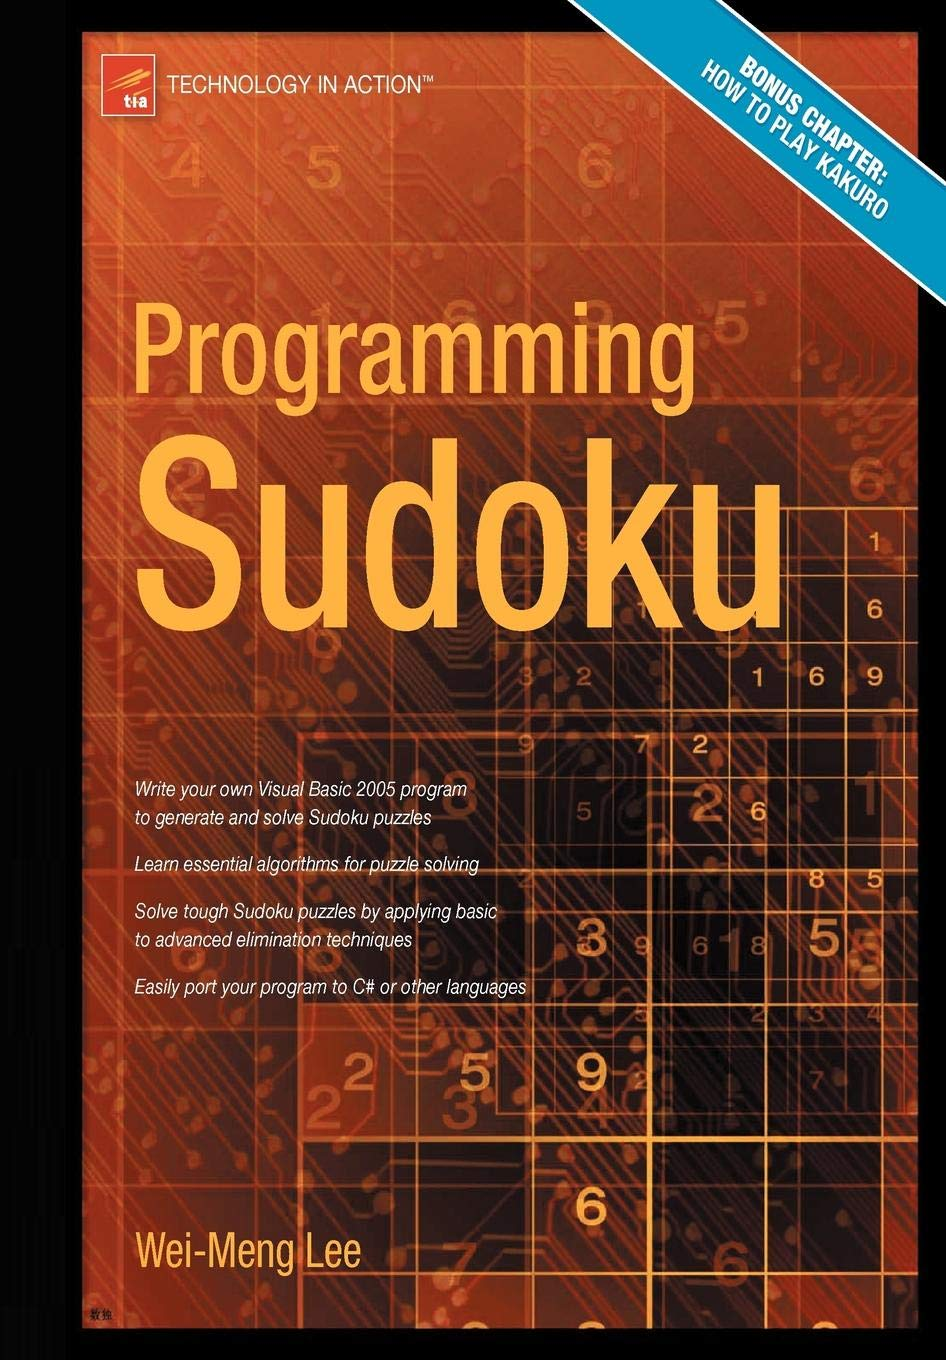 Buy Programming Sudoku (Technology in Action) Book Online at Low